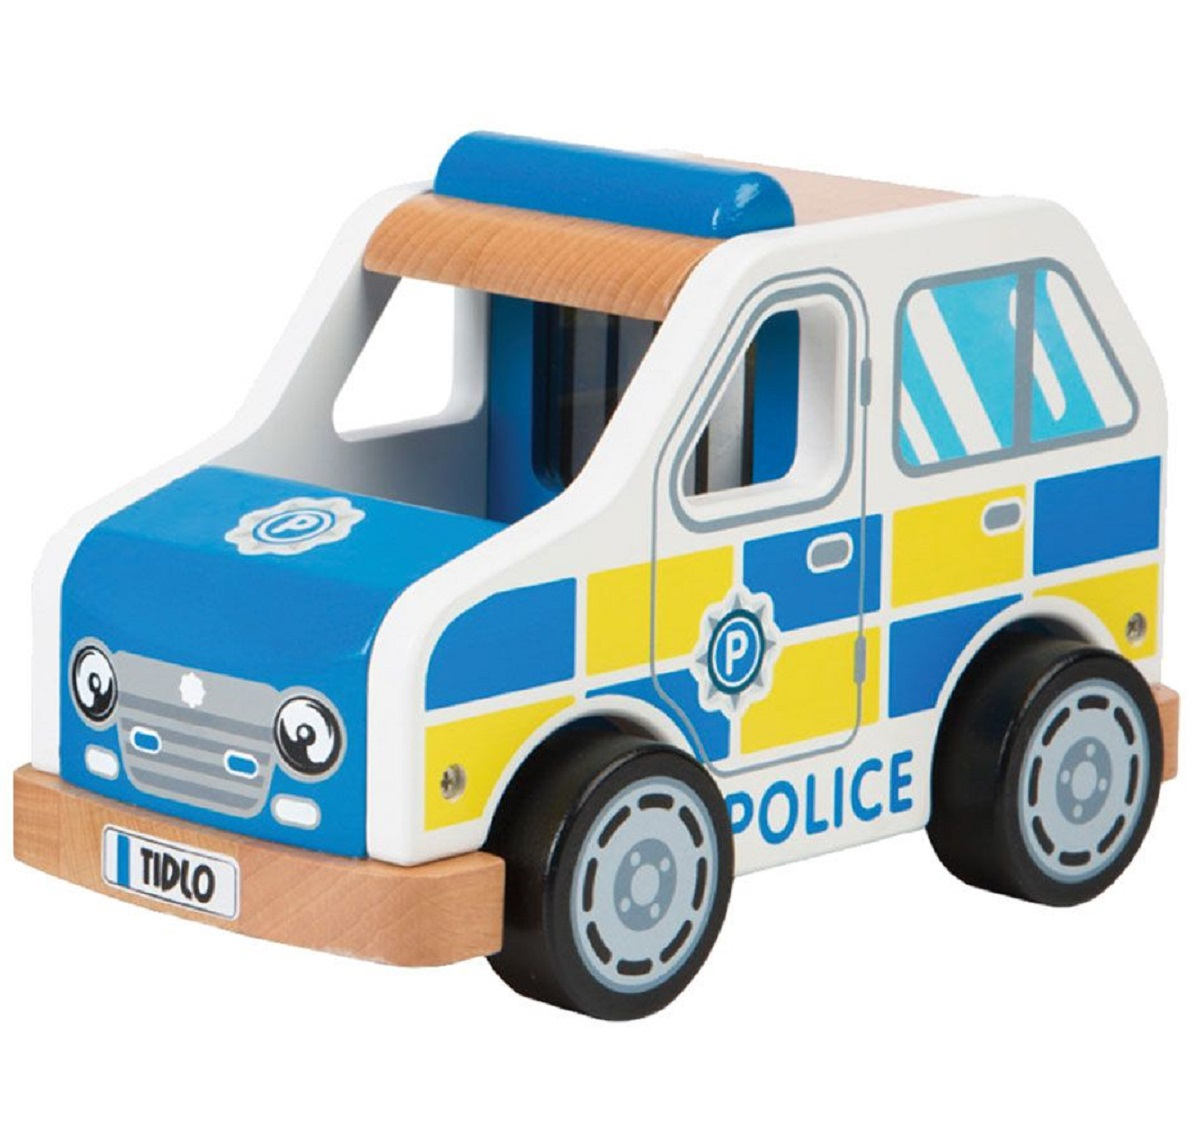 Toy Police Cars : Wooden police car toy toys traditional